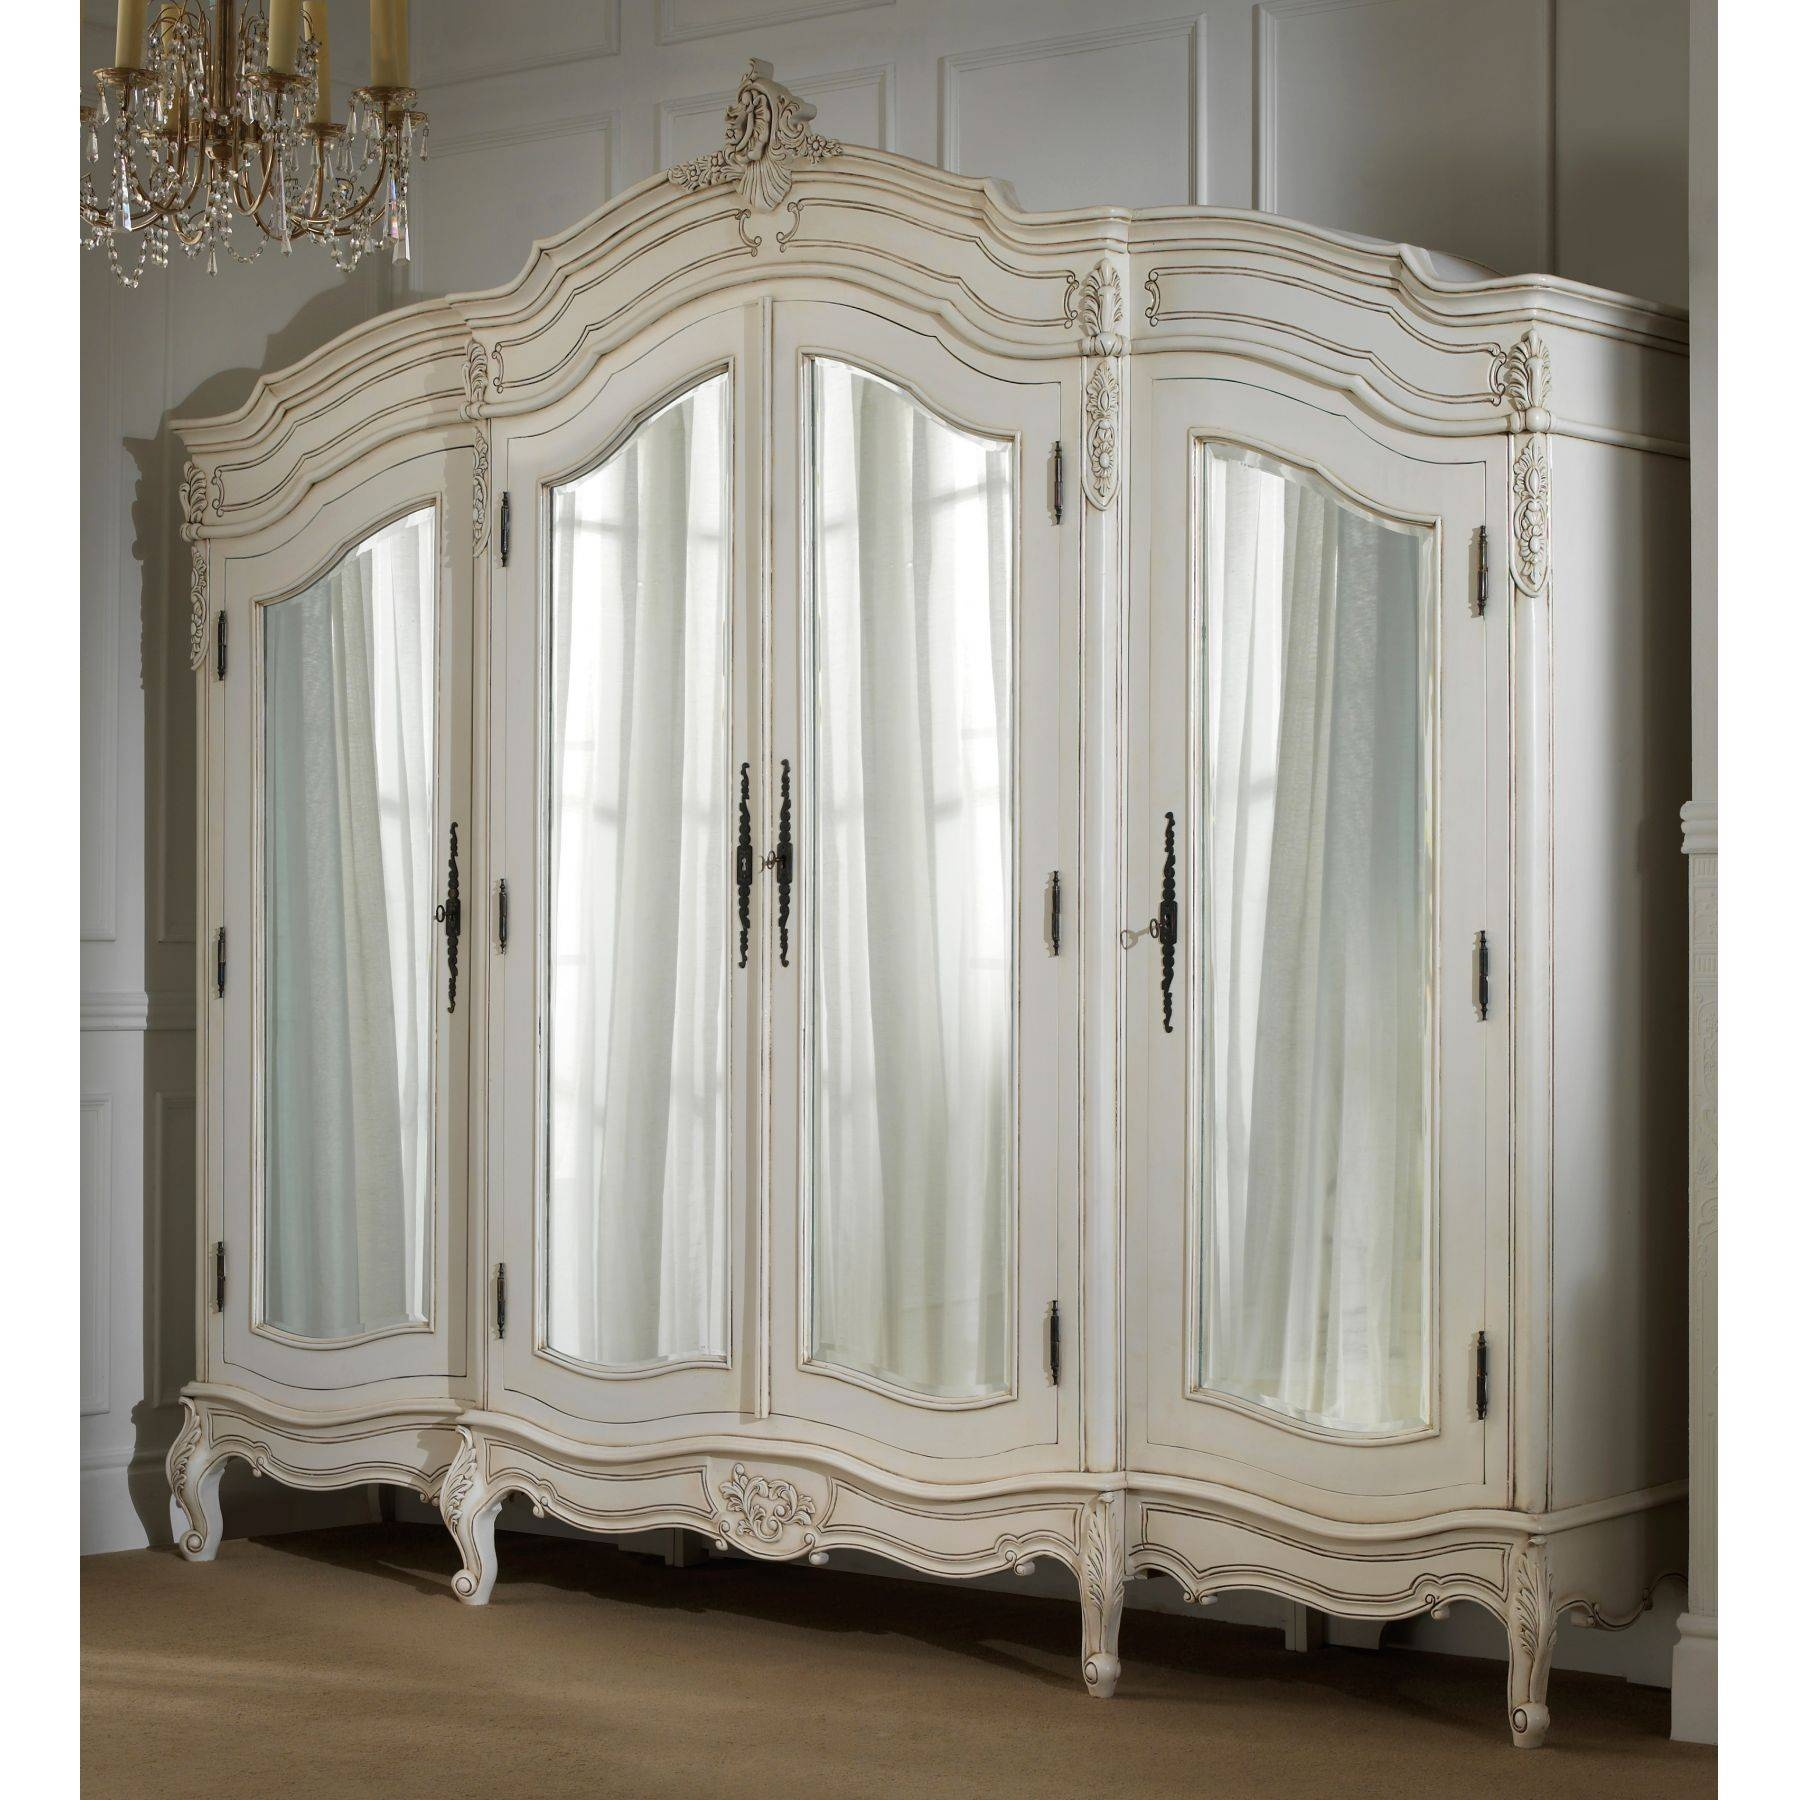 Ikea Closet Design Cheap Armoire Bedroom Armoir Makrillarnacom regarding Antique White Wardrobes (Image 10 of 15)